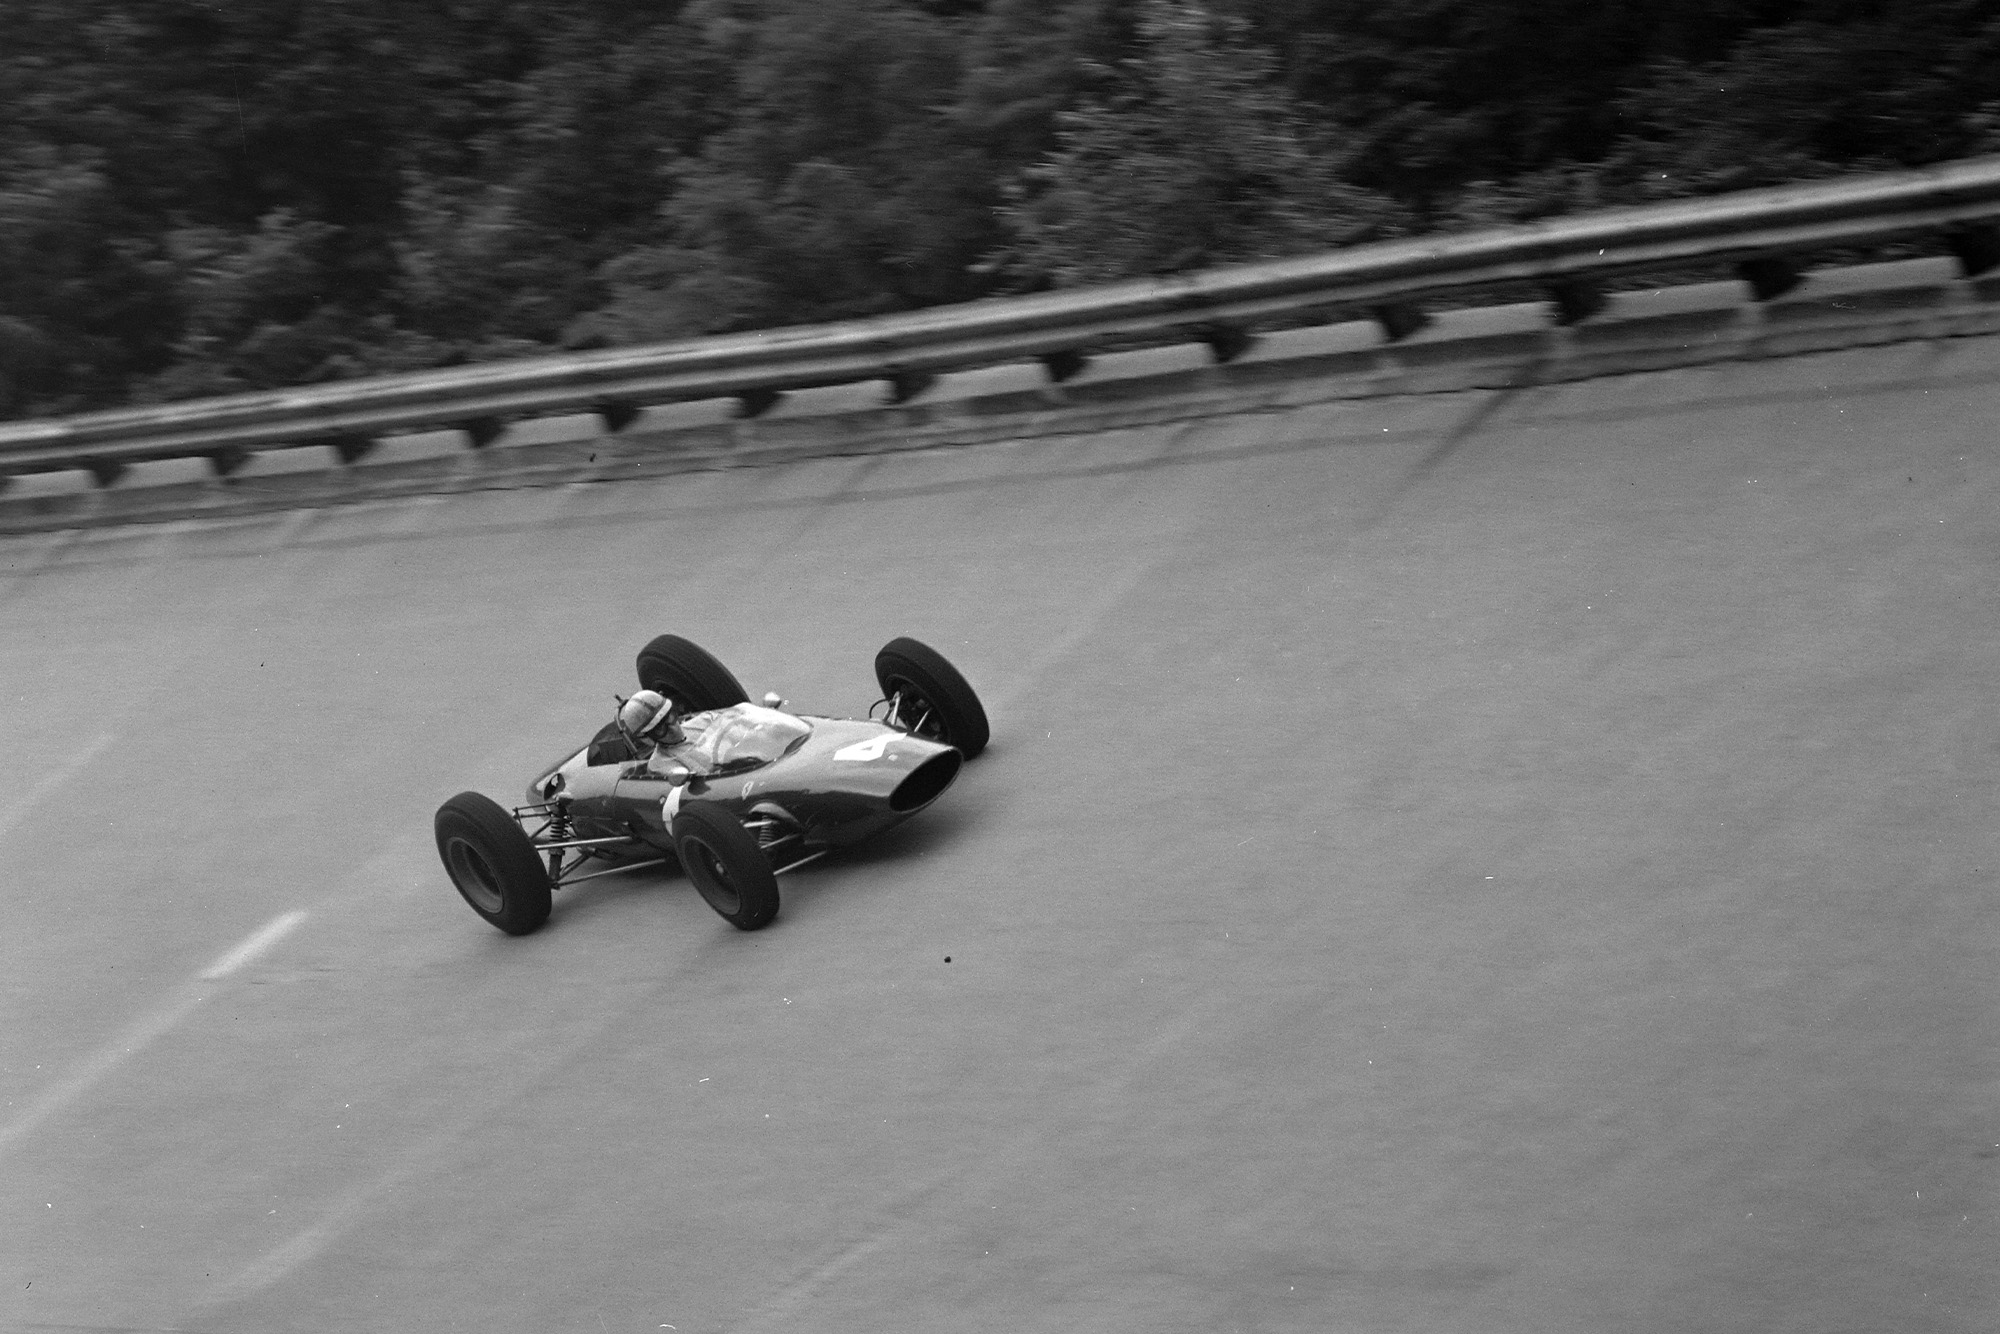 John Surtees, Ferrari 156 Aero, on the banking. This layout was not used for the race.